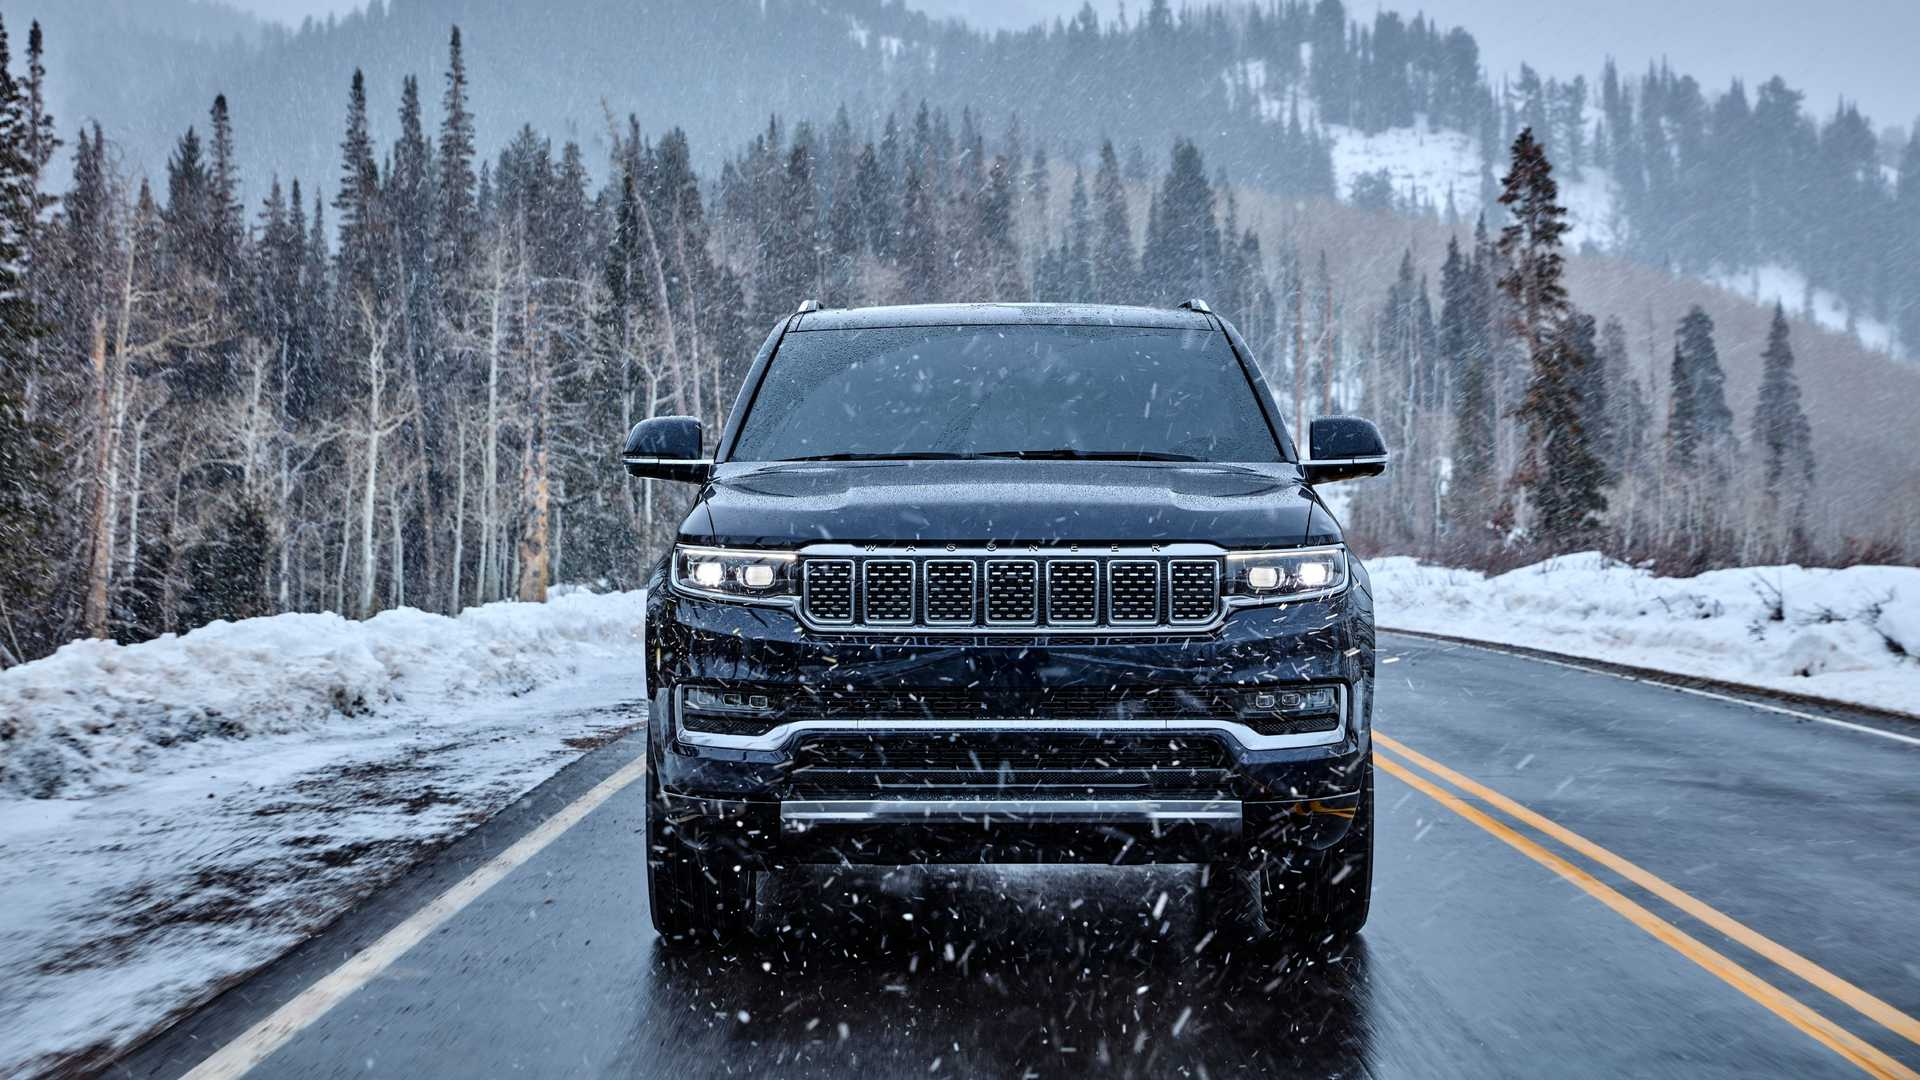 2022-jeep-grand-wagoneer-exterior-front-view-2